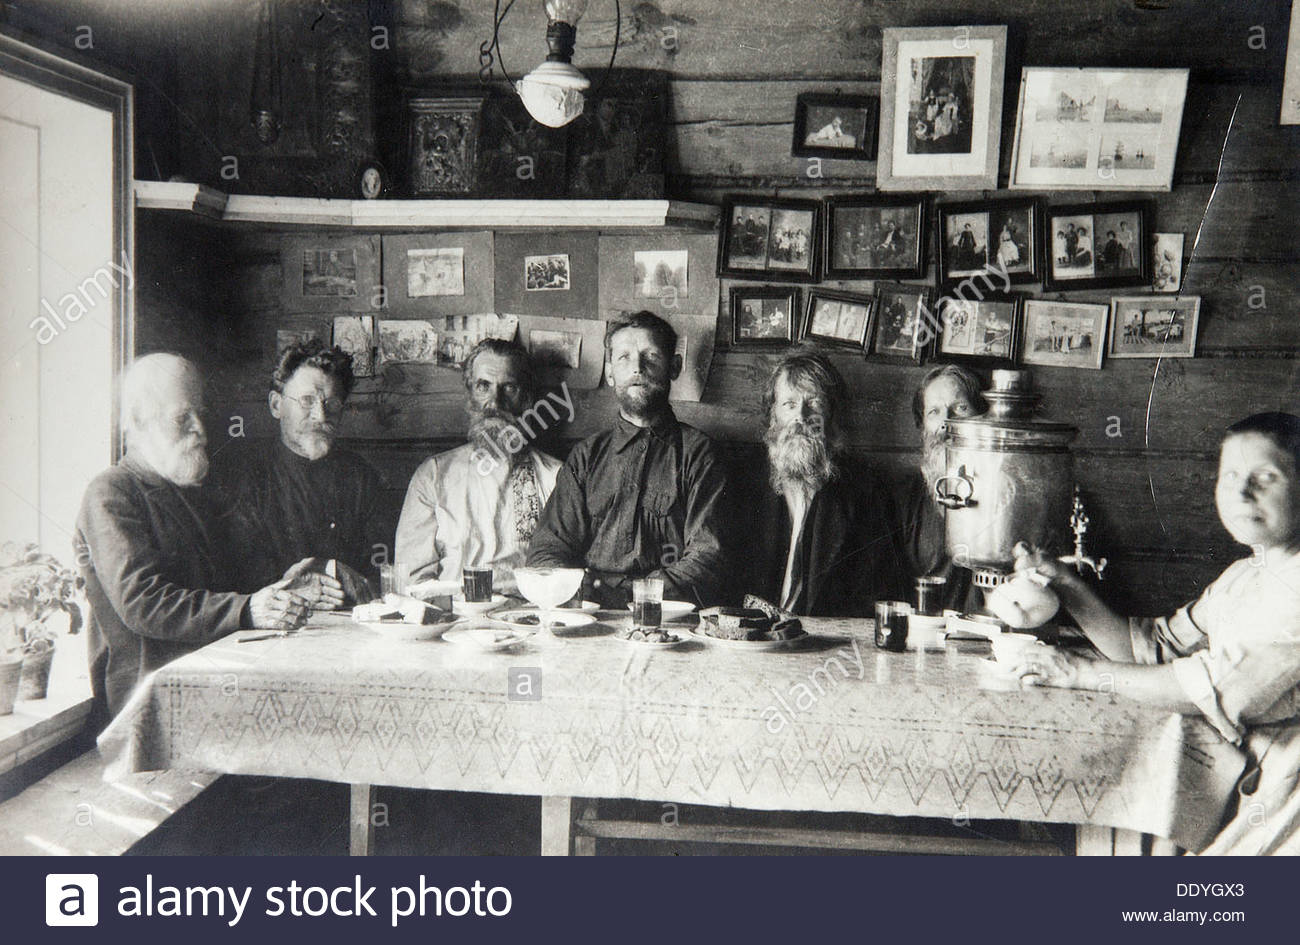 Mikhail Kalinin, Soviet politician, with peasants in his village, Russia, 1920. Artist: Pyotr Otsup - Stock Image